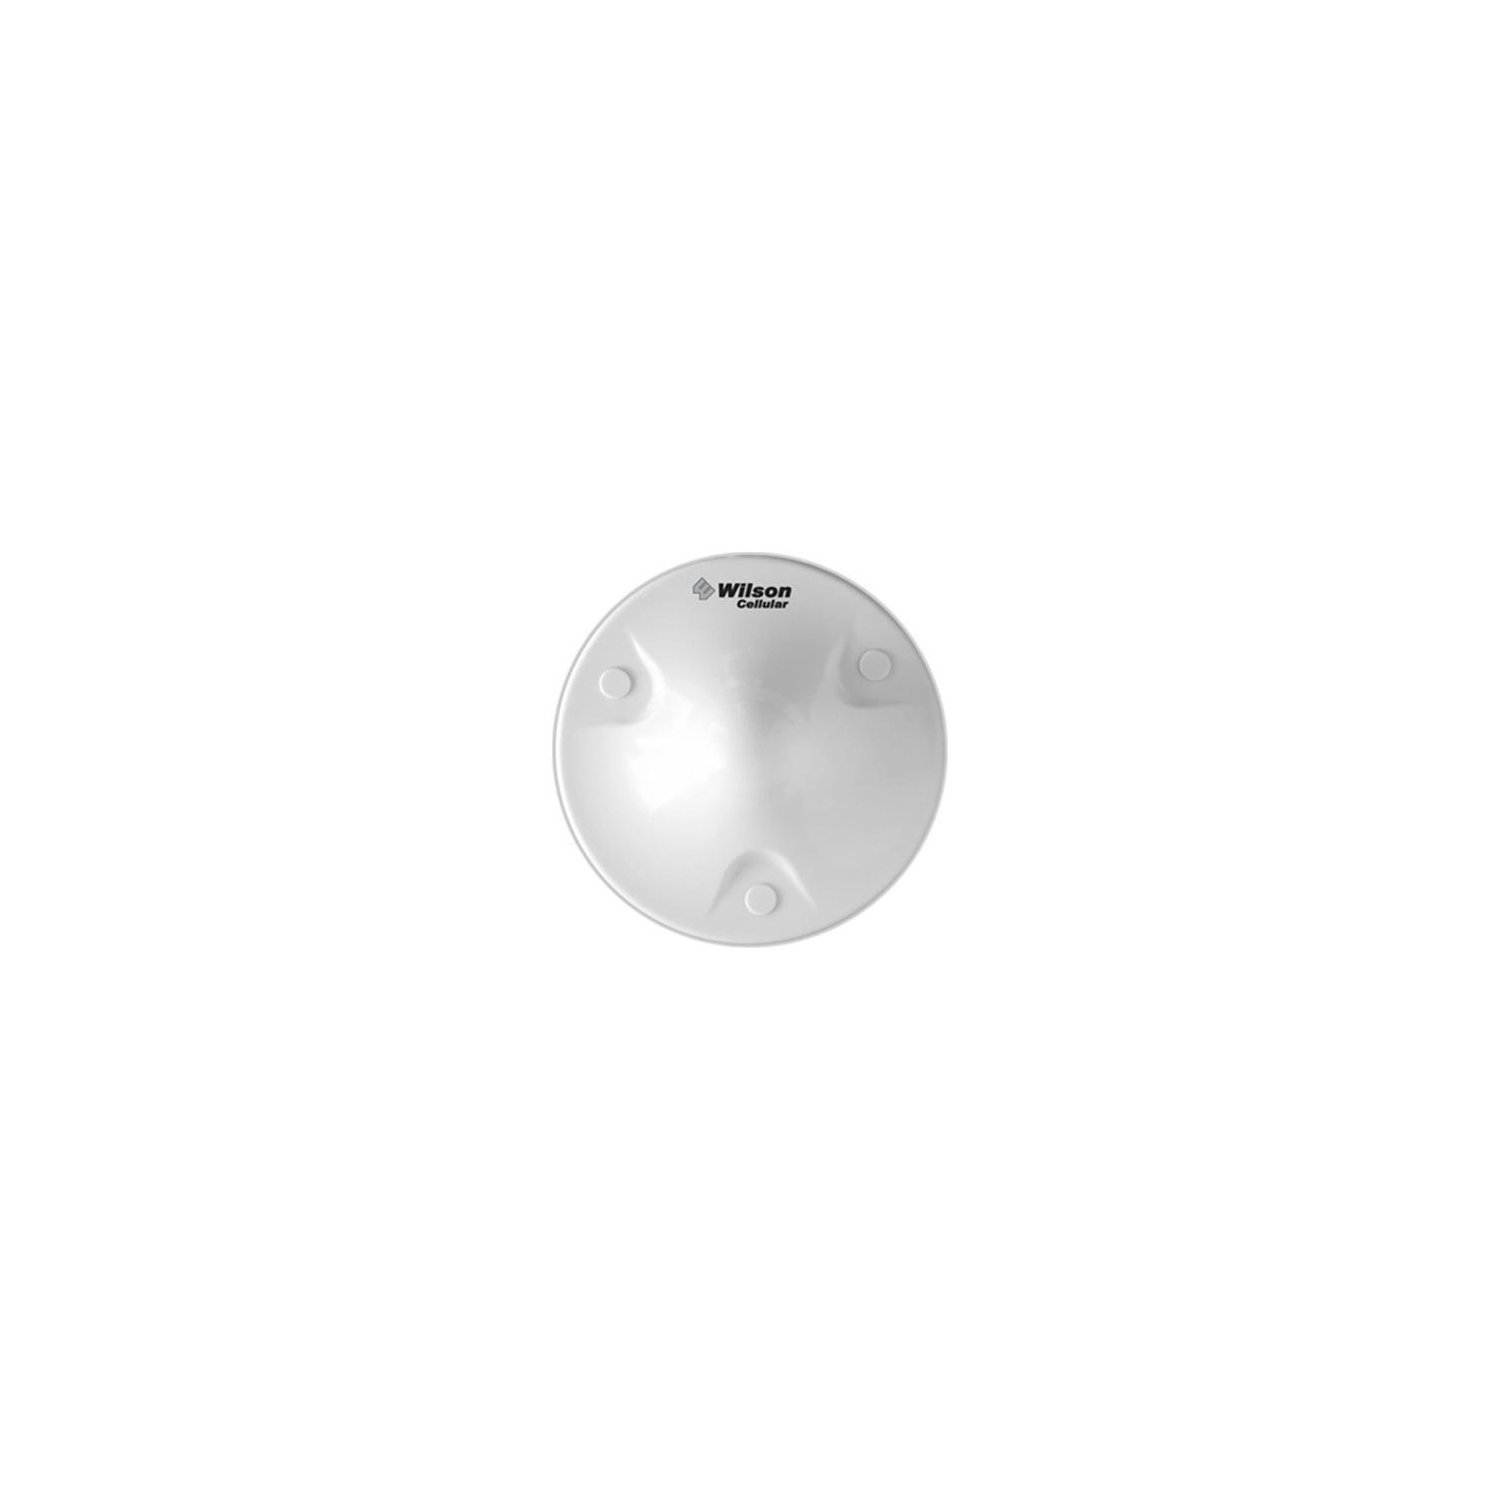 Wilson Electronics Dual Band - 800-1900 MHz Vertically Polarized Dome Ceiling Antenna with N Female Connector